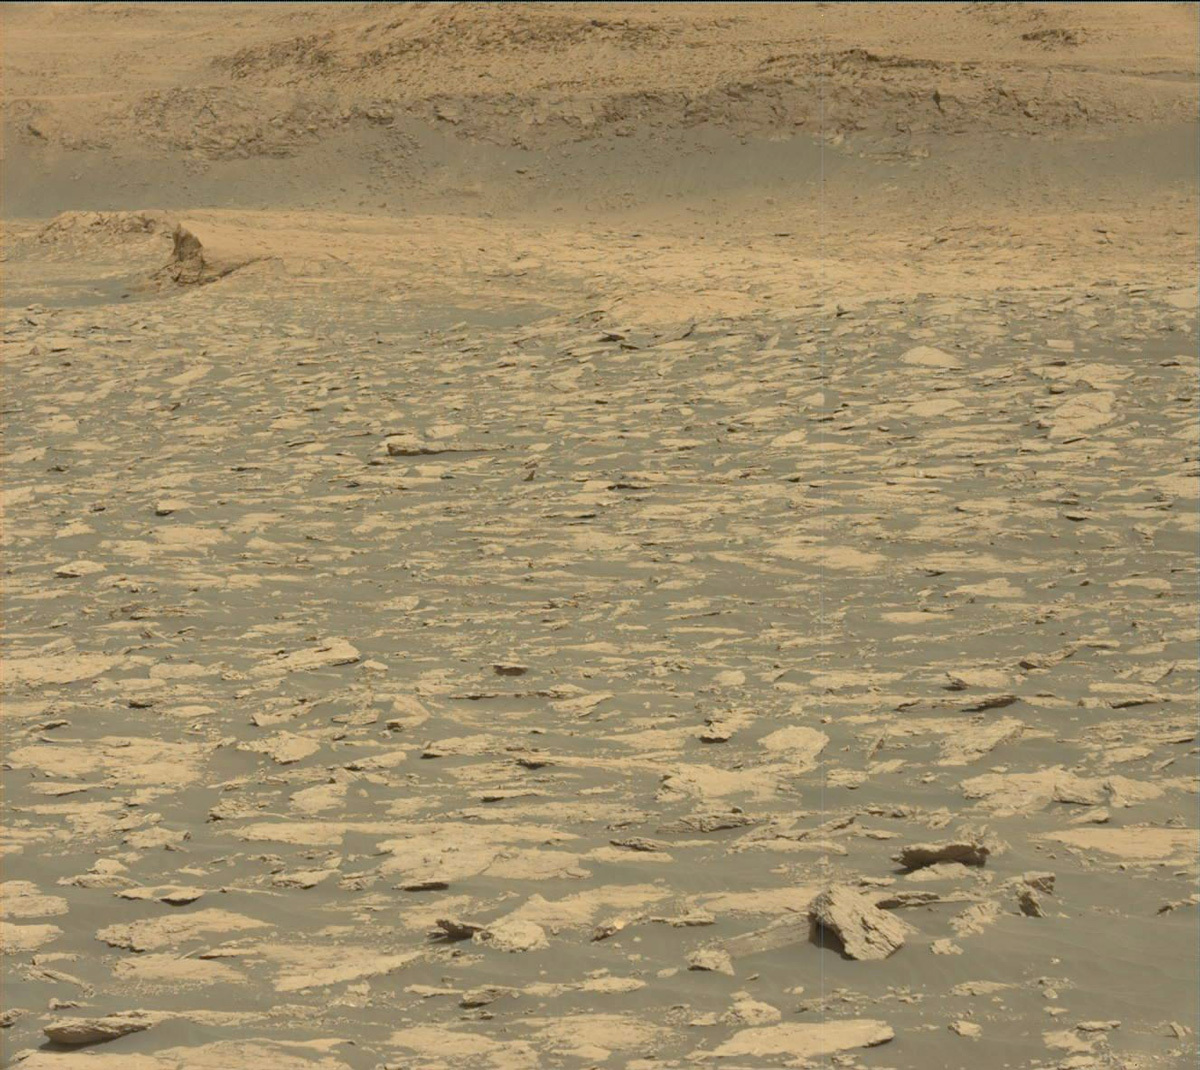 This image was taken by Mast Camera (Mastcam) onboard NASA's Mars rover Curiosity on Sol 3025. Credit: NASA/JPL-Caltech/MSSS. Download image ›